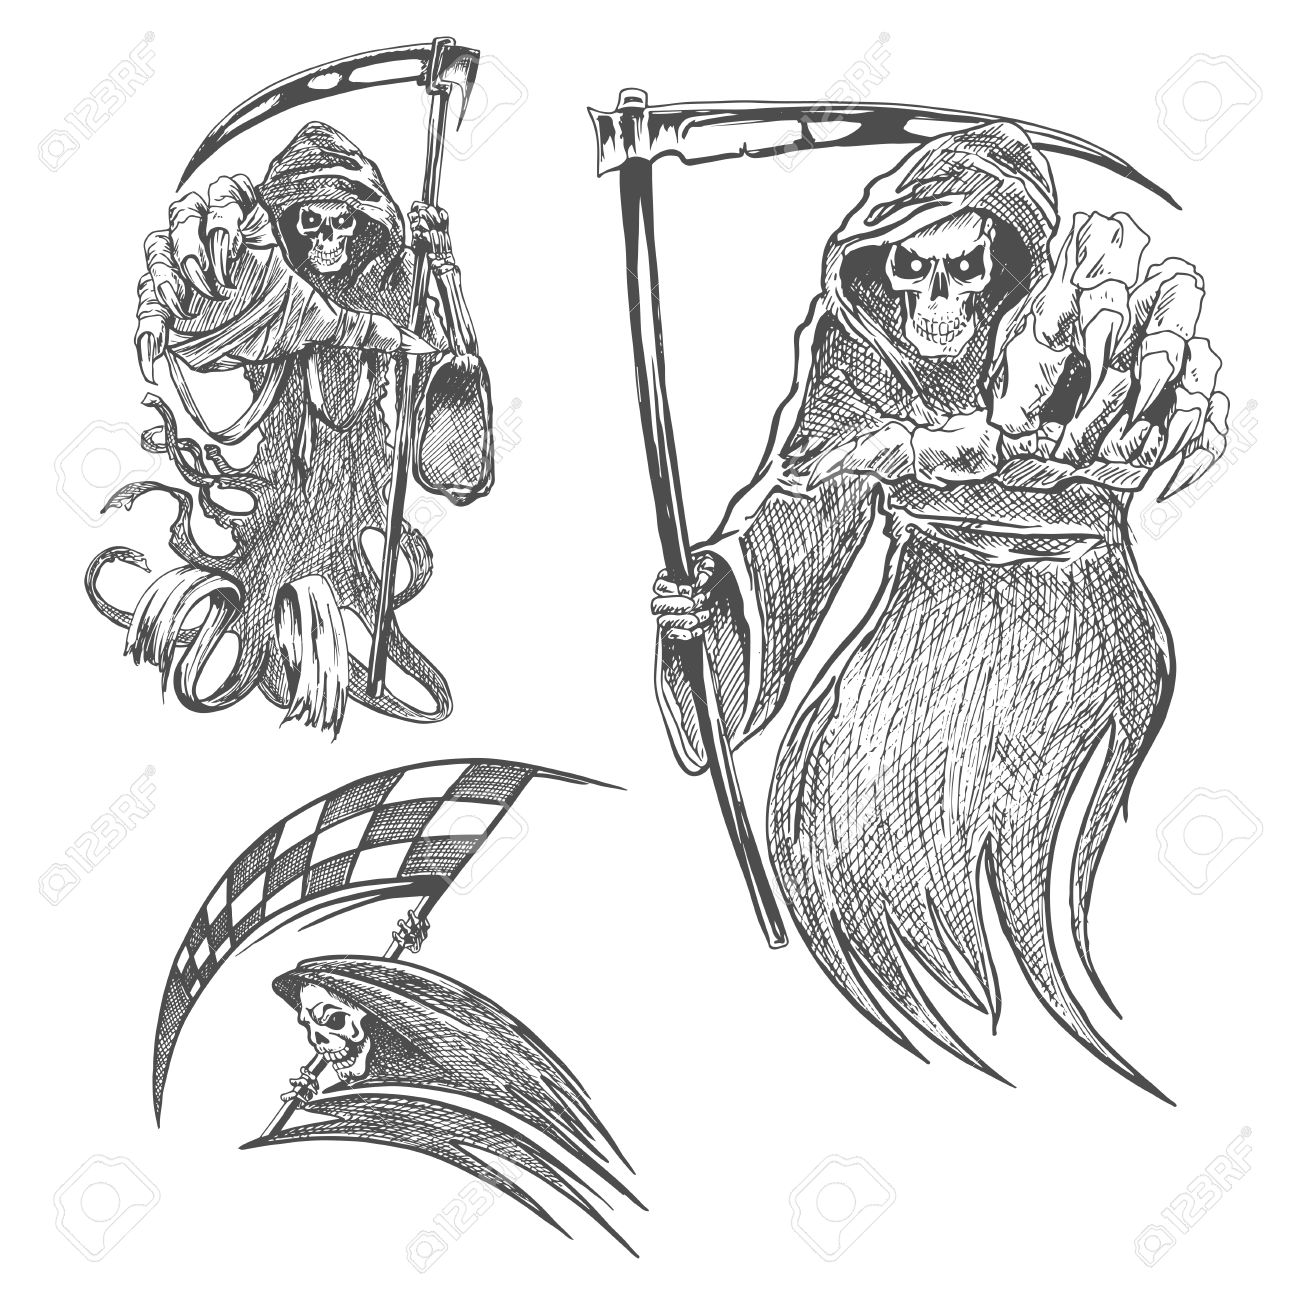 Death with scythe pencil sketch halloween vector icon gothic mortal character sketching for tattoo